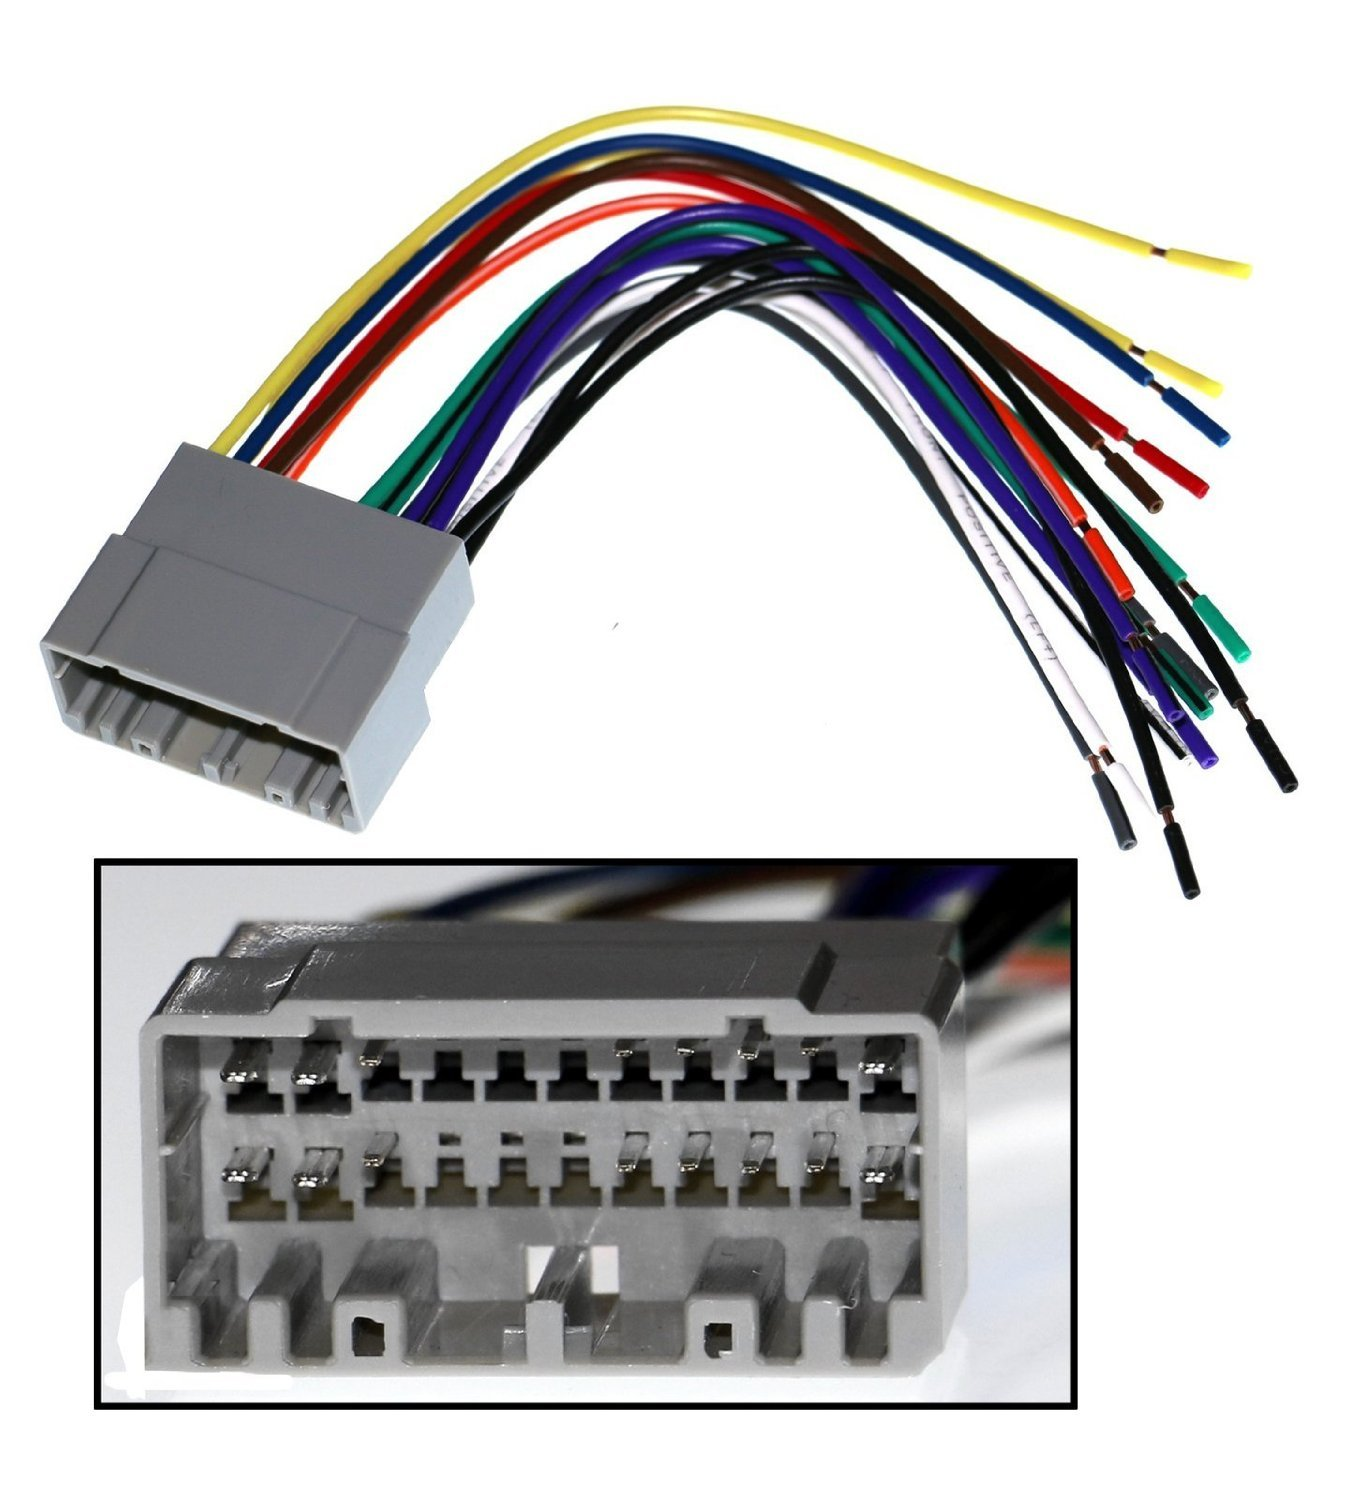 710Q%2BKgavVL._SL1500_ amazon com pioneer car stereo reciever dash install mounting car stereo wiring harness at readyjetset.co